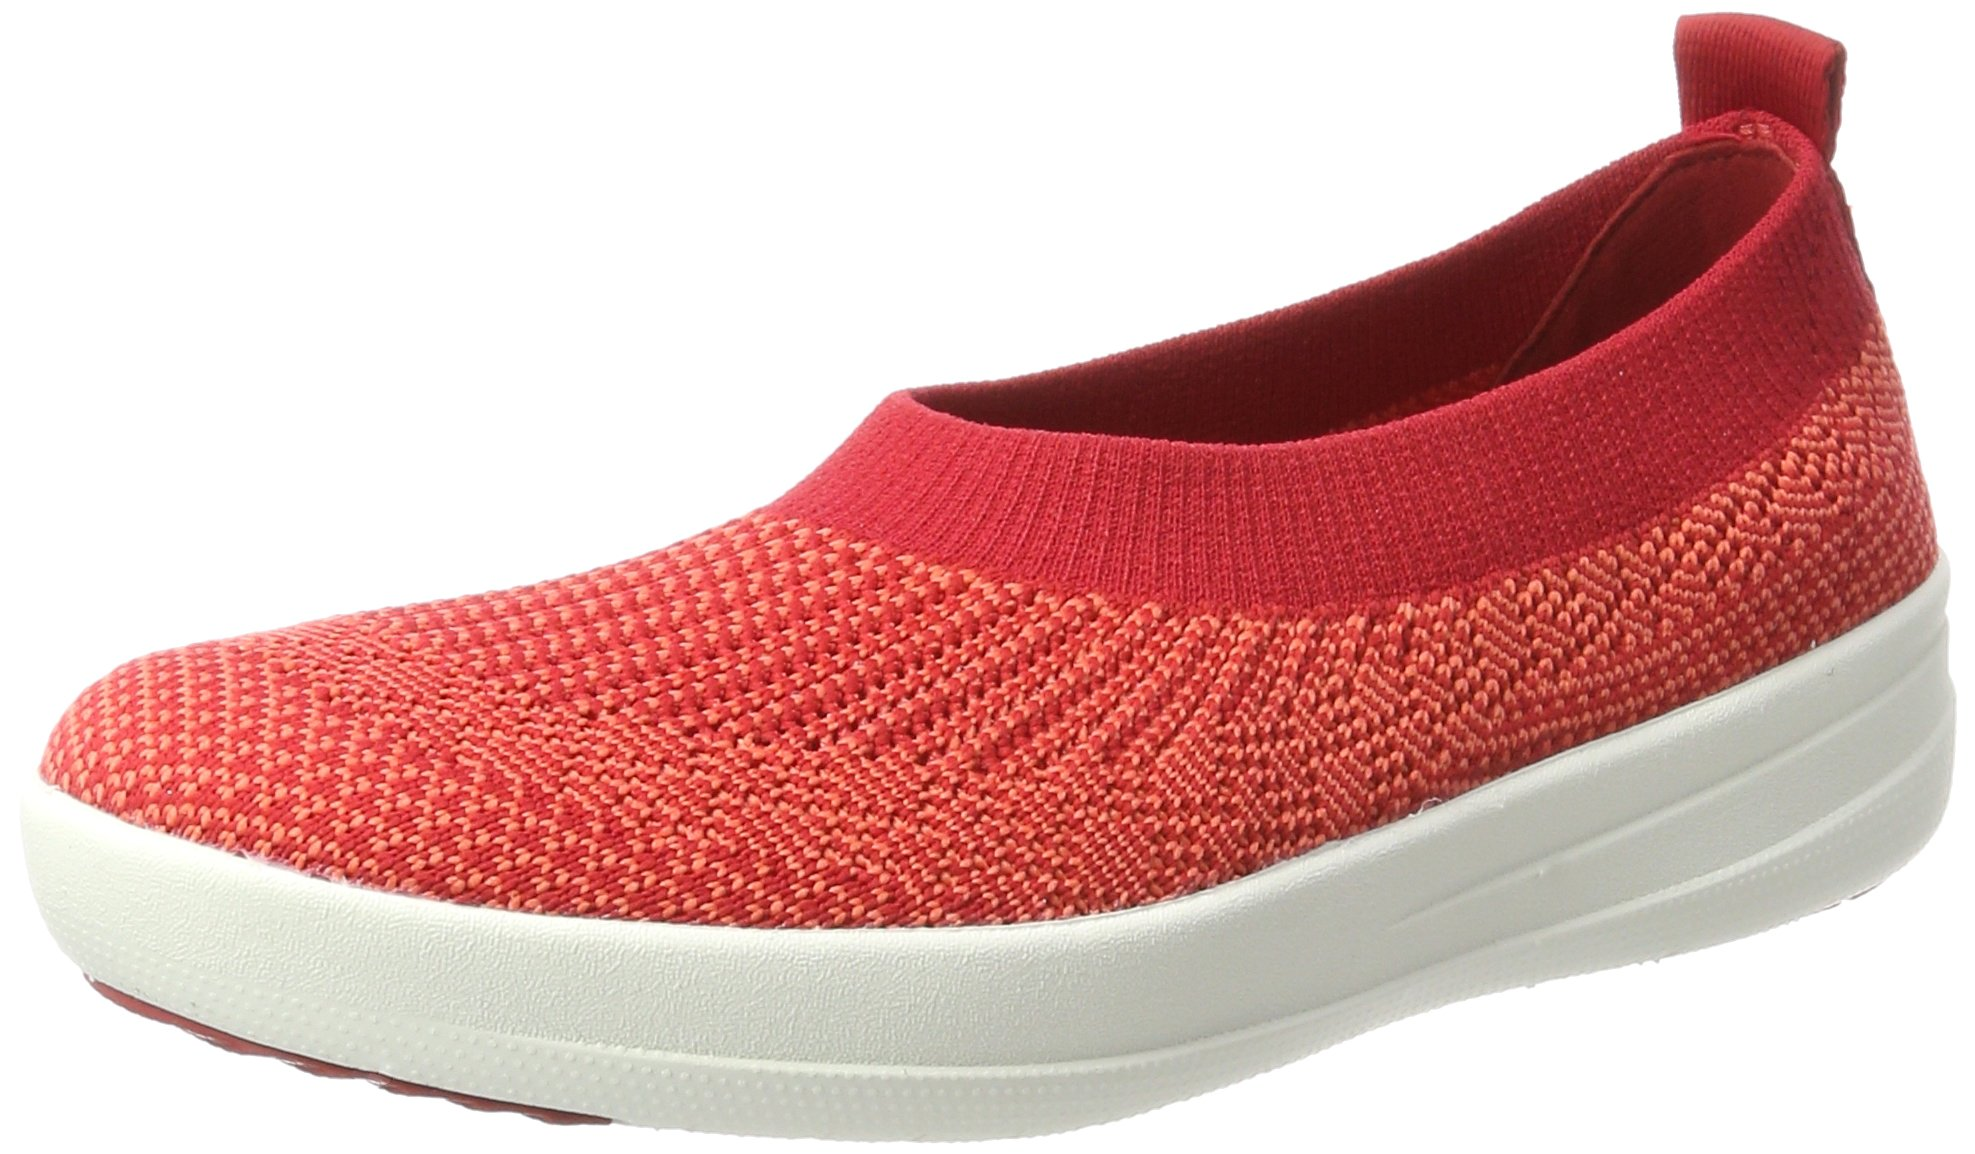 Fitflop H95 Women's Uberknit™ Slip-On Ballerinas, Classic Red - 8.5 by FitFlop (Image #1)